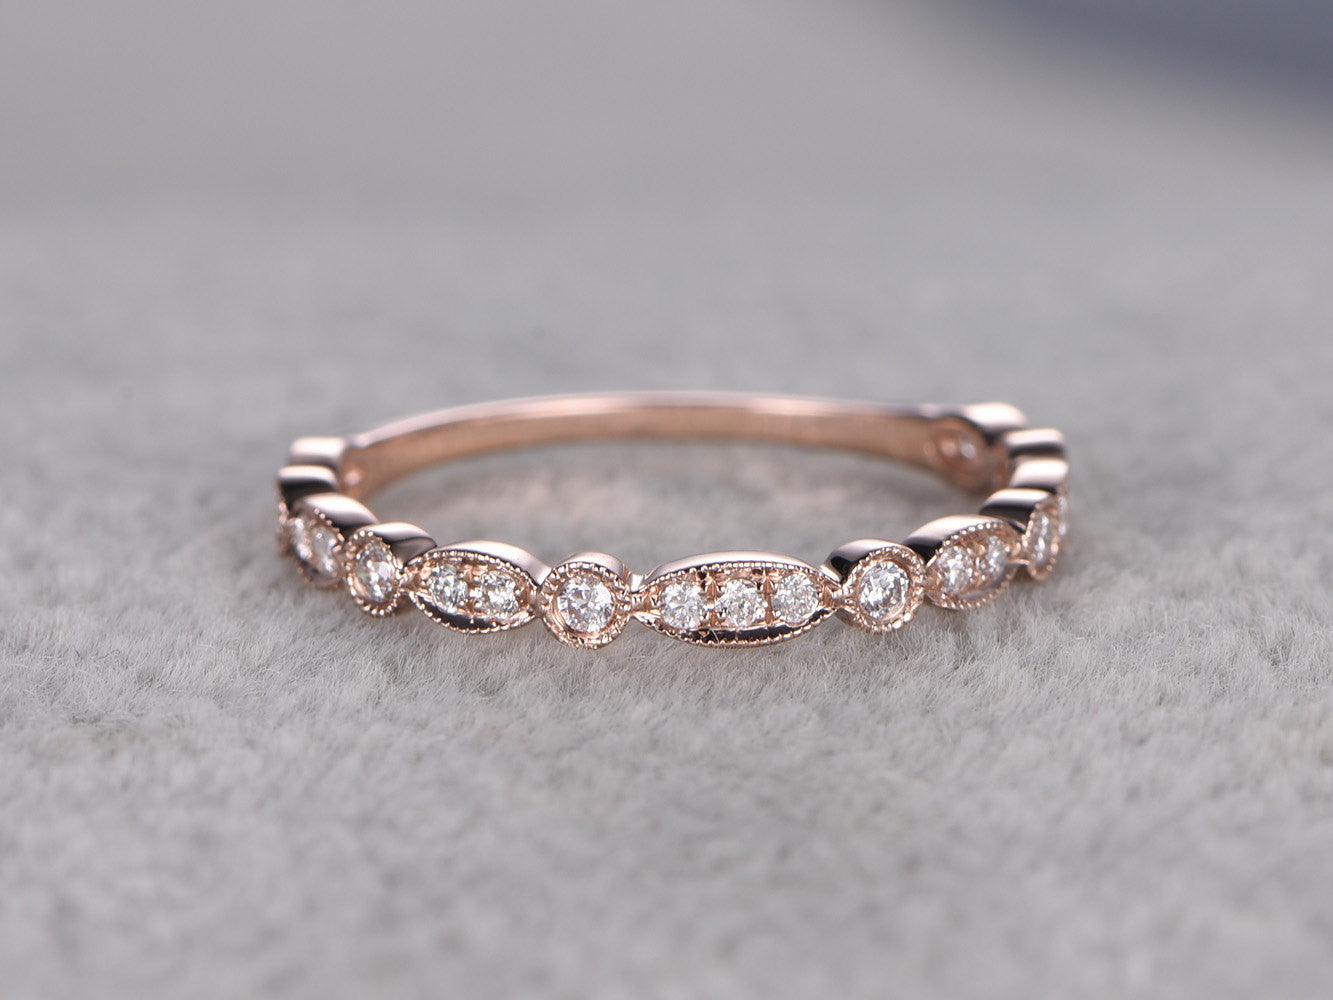 Natural Diamonds,3/4 Eternity Wedding Ring,Solid 14K Rose gold,Anniversary Ring,Art deco Marquise style,stacking,milgrain,Matching band